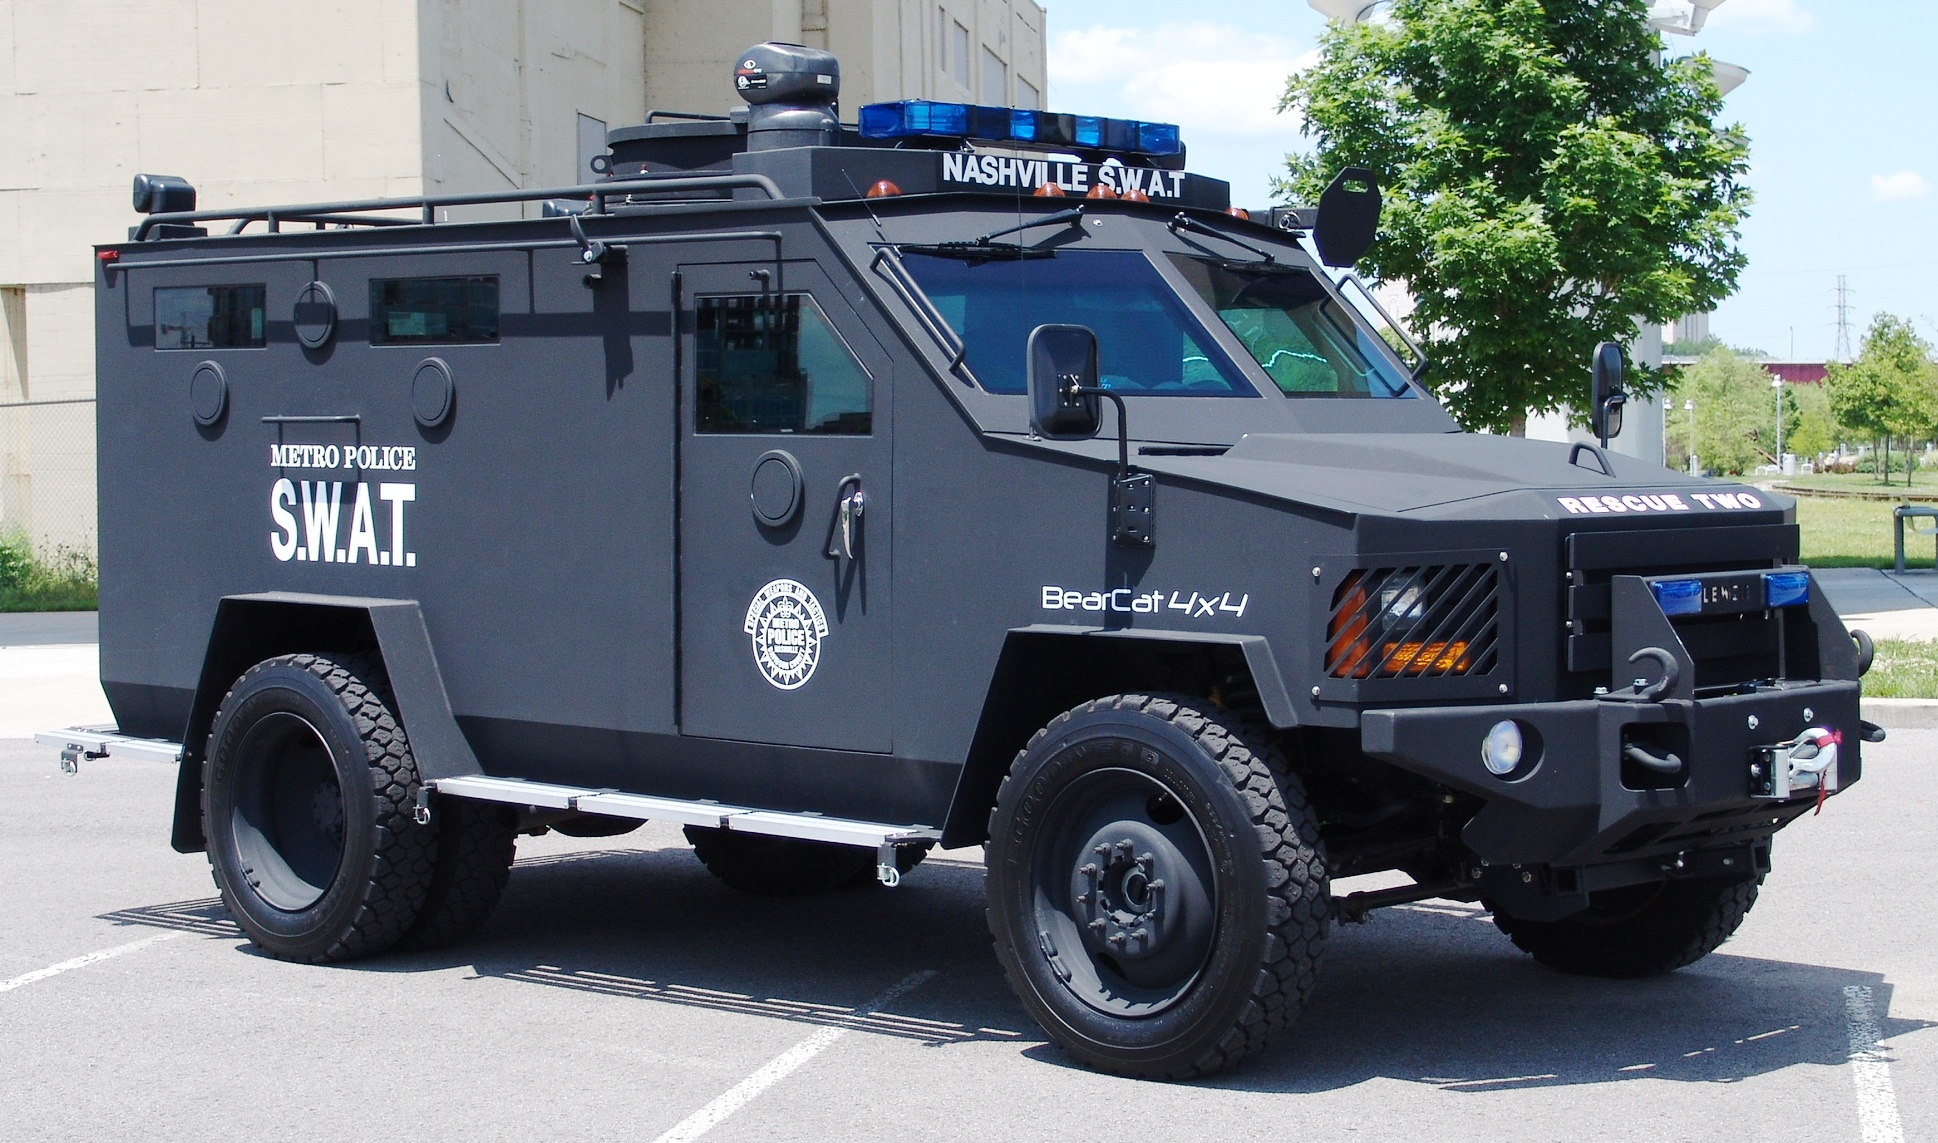 Homeland Security Detroit Police Use Apc For Forcible